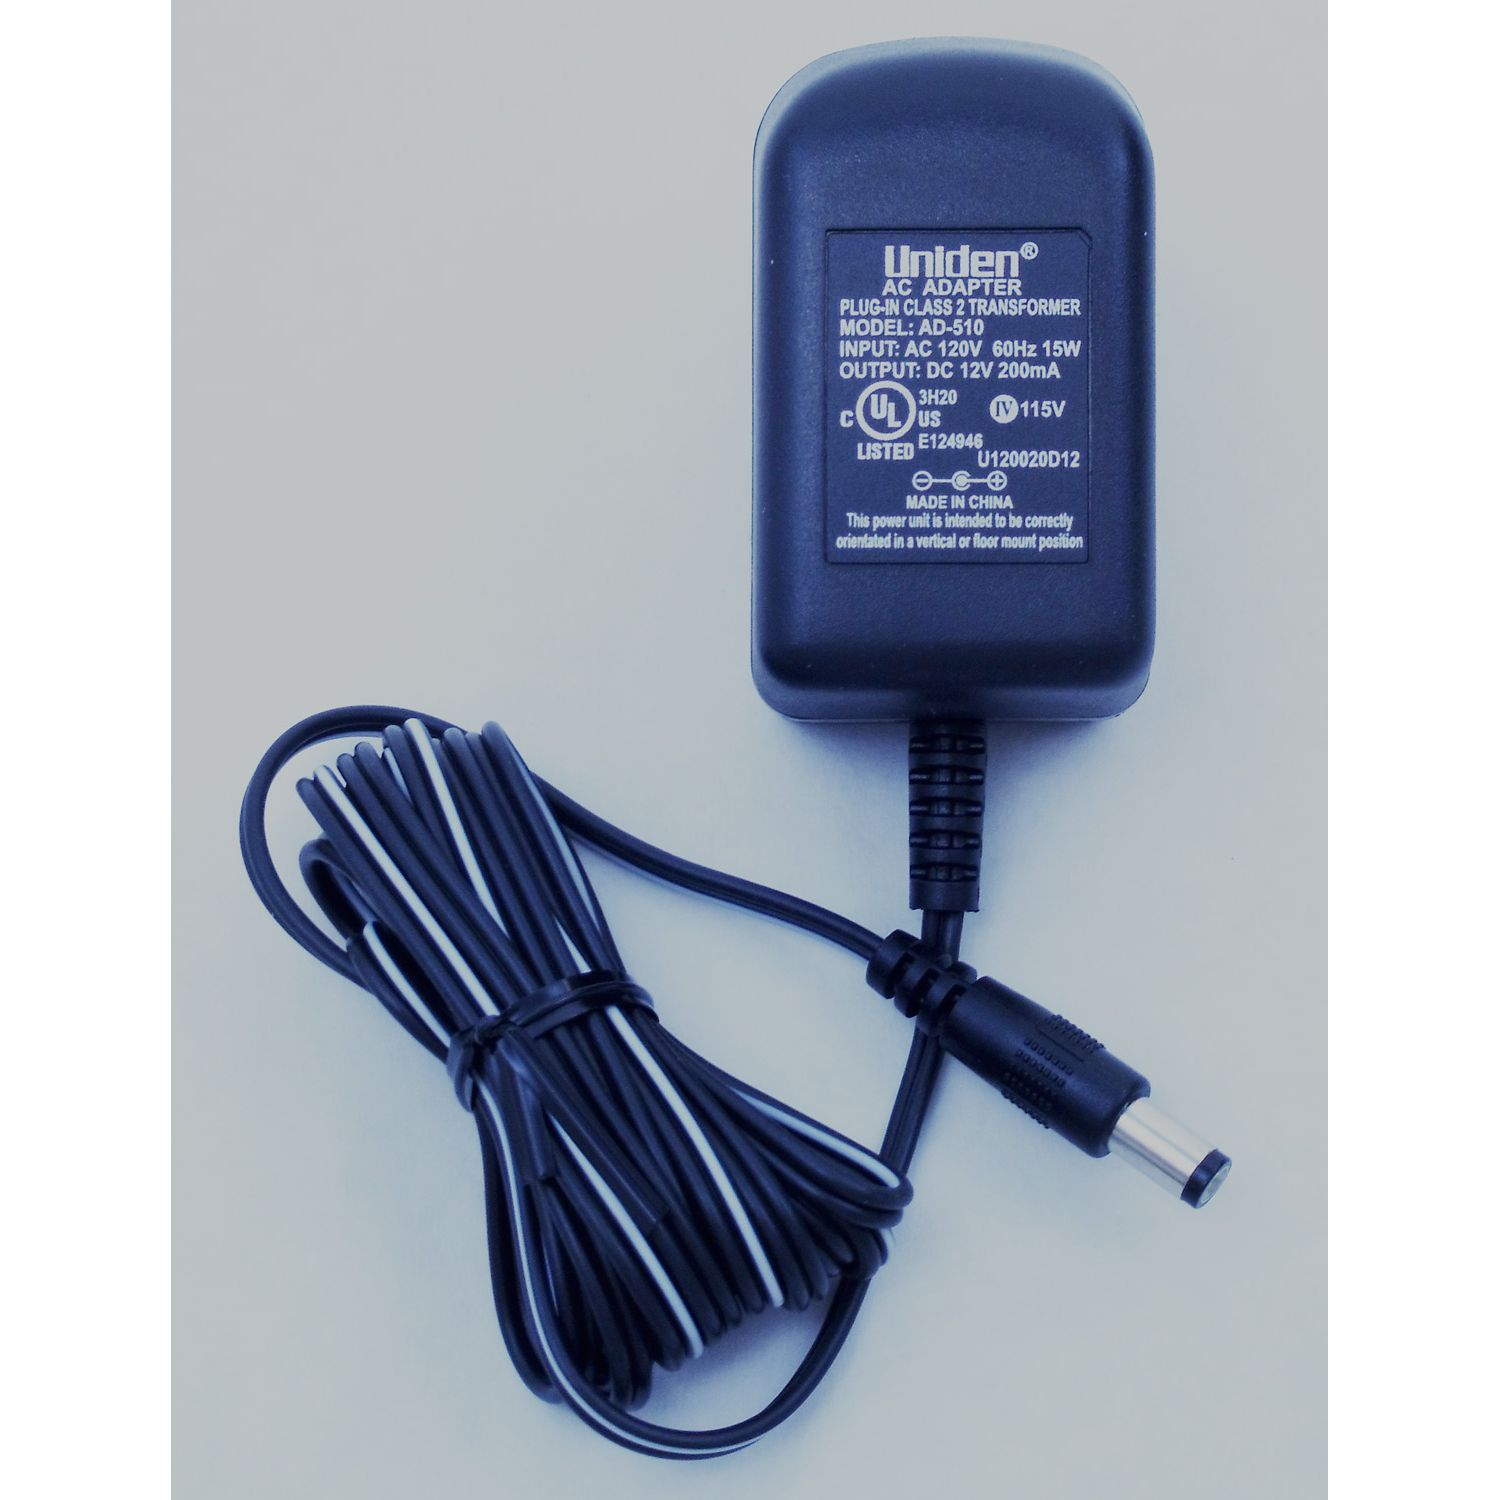 BADY0568001 - Uniden Bearcat AC Adapter Plug-In Transformer For VOYAGER and ATLANTIS250 Radio